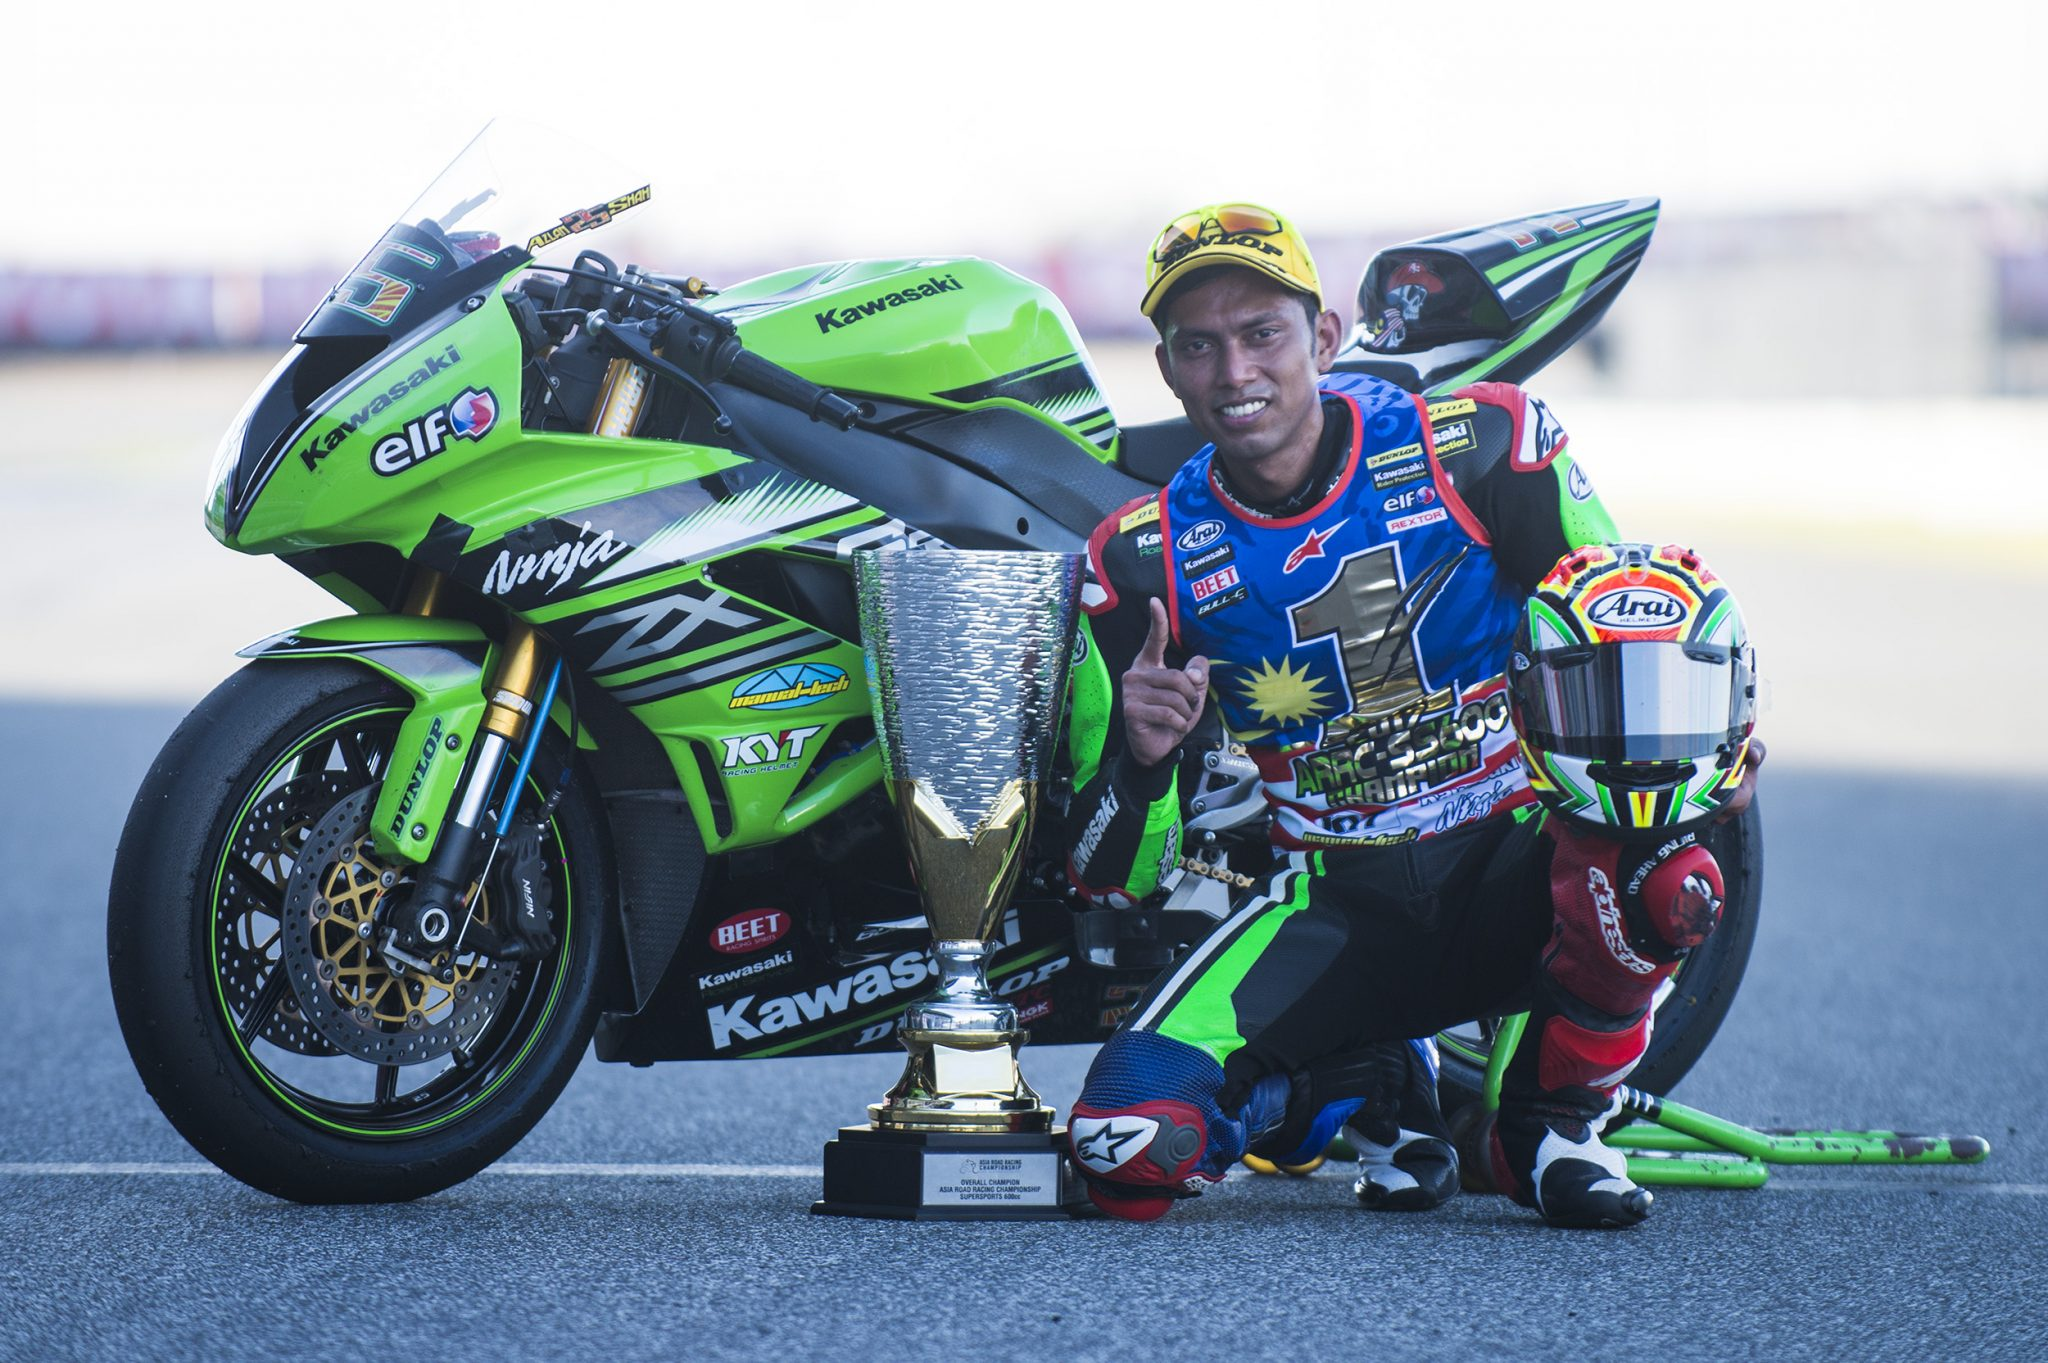 Azlan Shah races in the MSC with Chia Motor PJ Kawasaki Racing Team